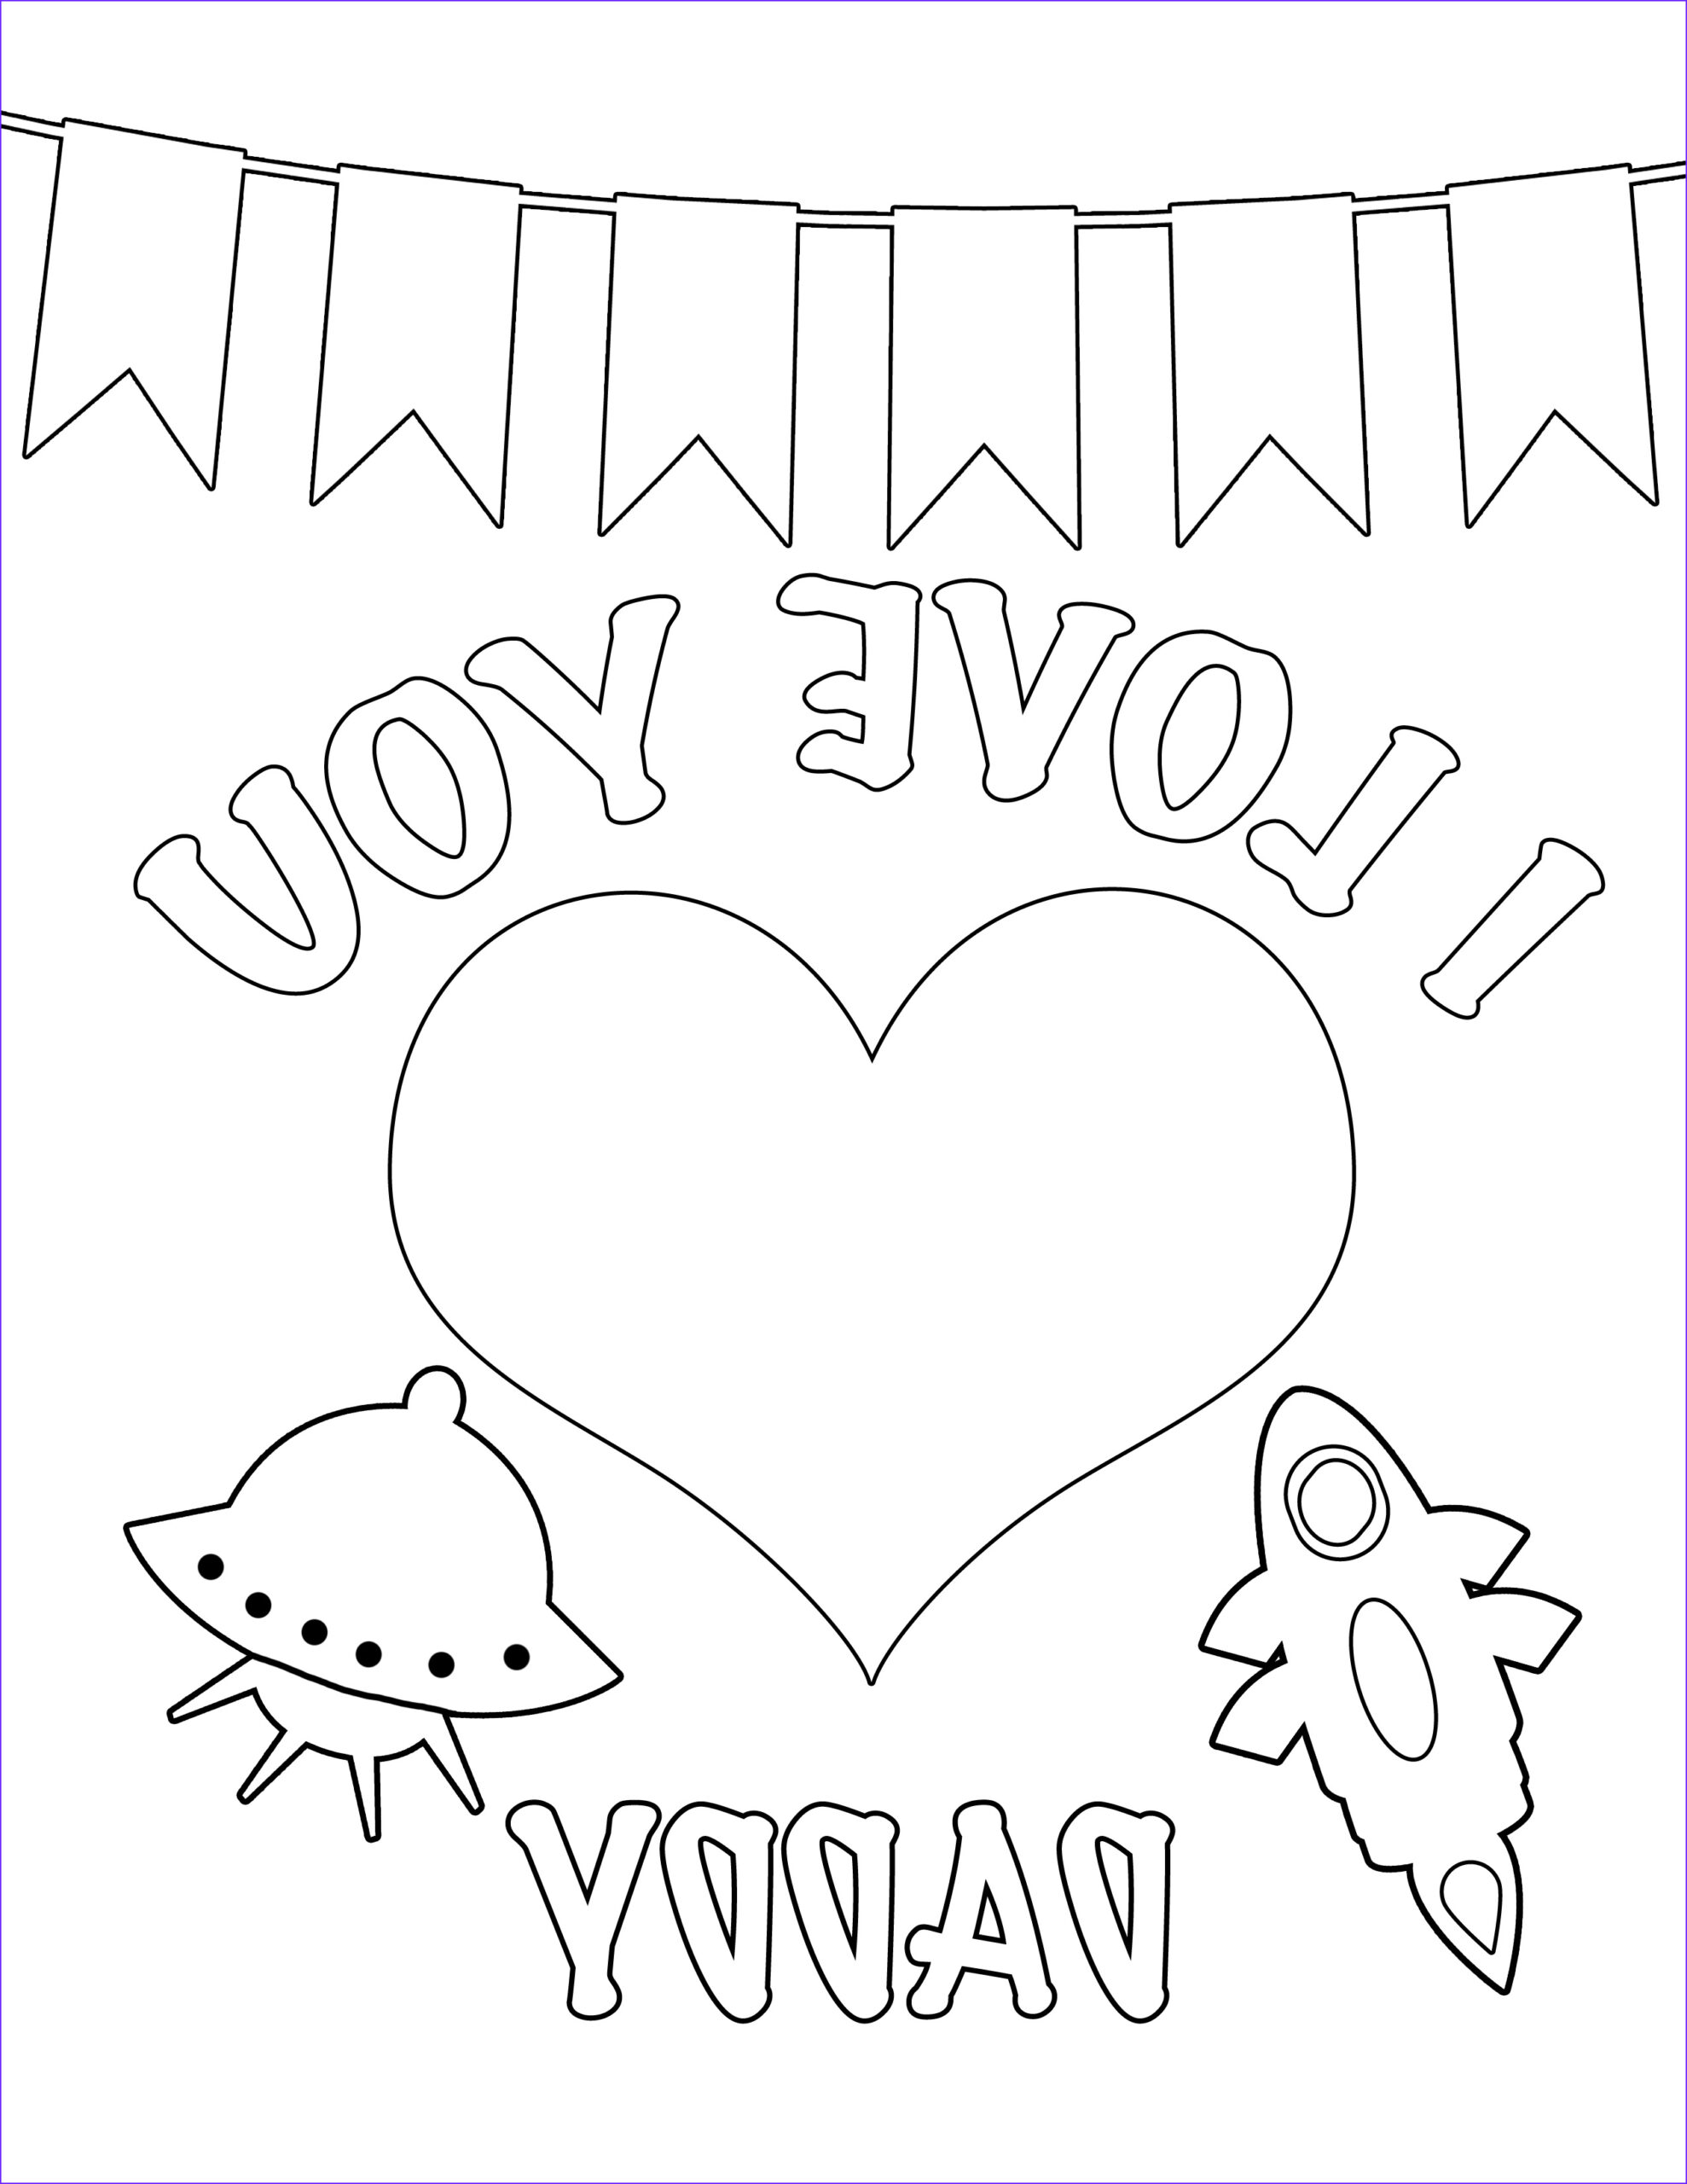 Valentine Coloring Pages Free New Stock Party Simplicity Free Valentines Day Coloring Pages and